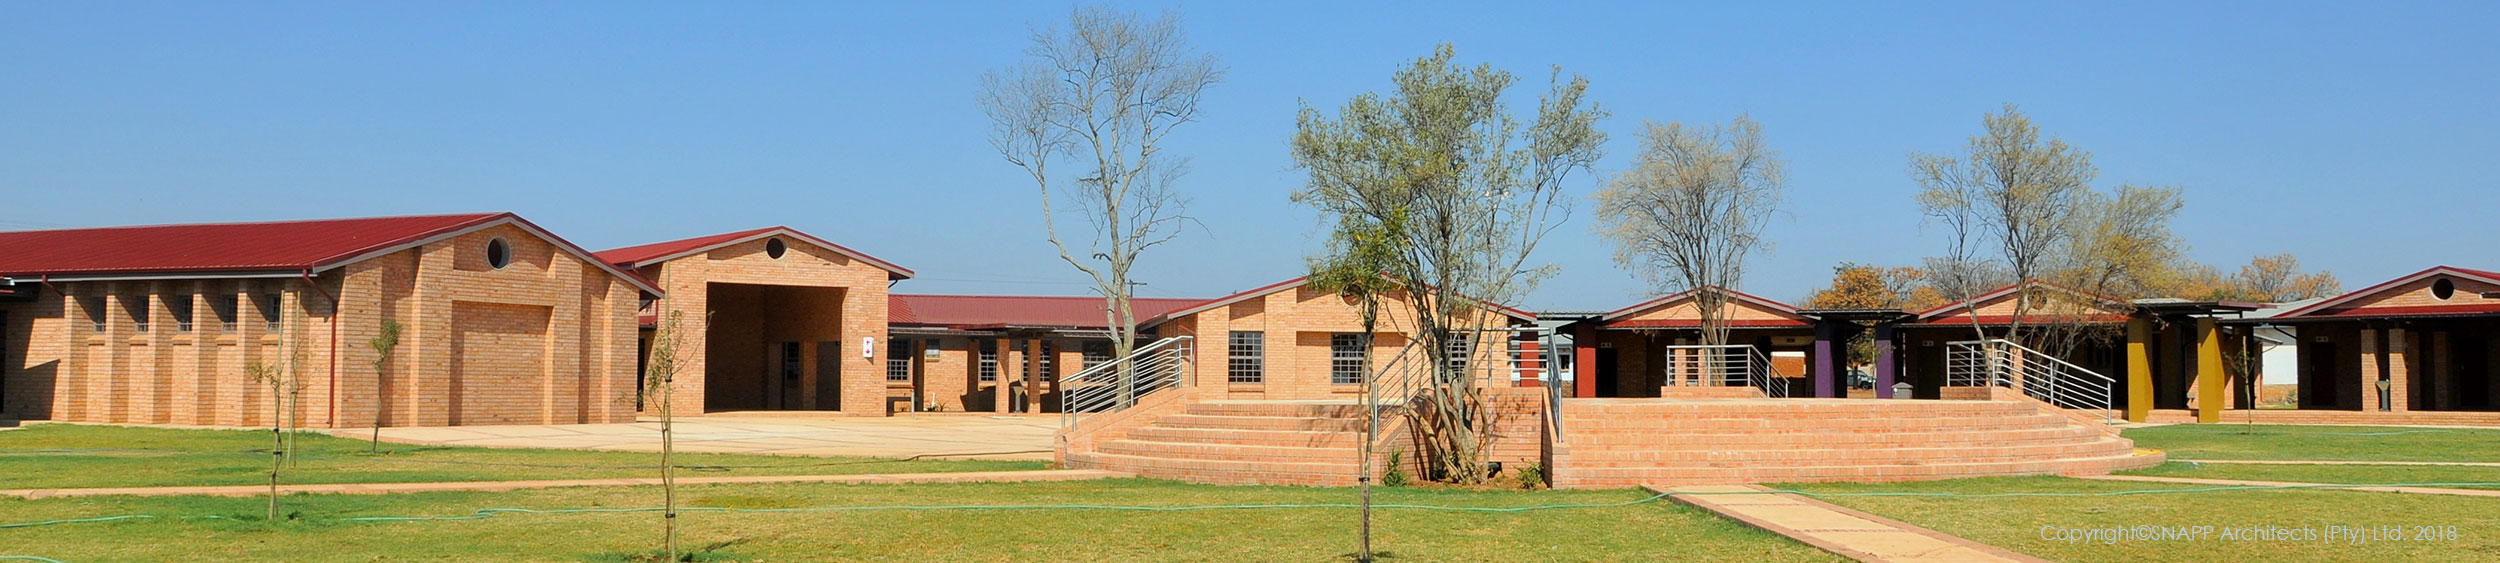 Mmankala-Commercial-&-Technical-School-2.jpg